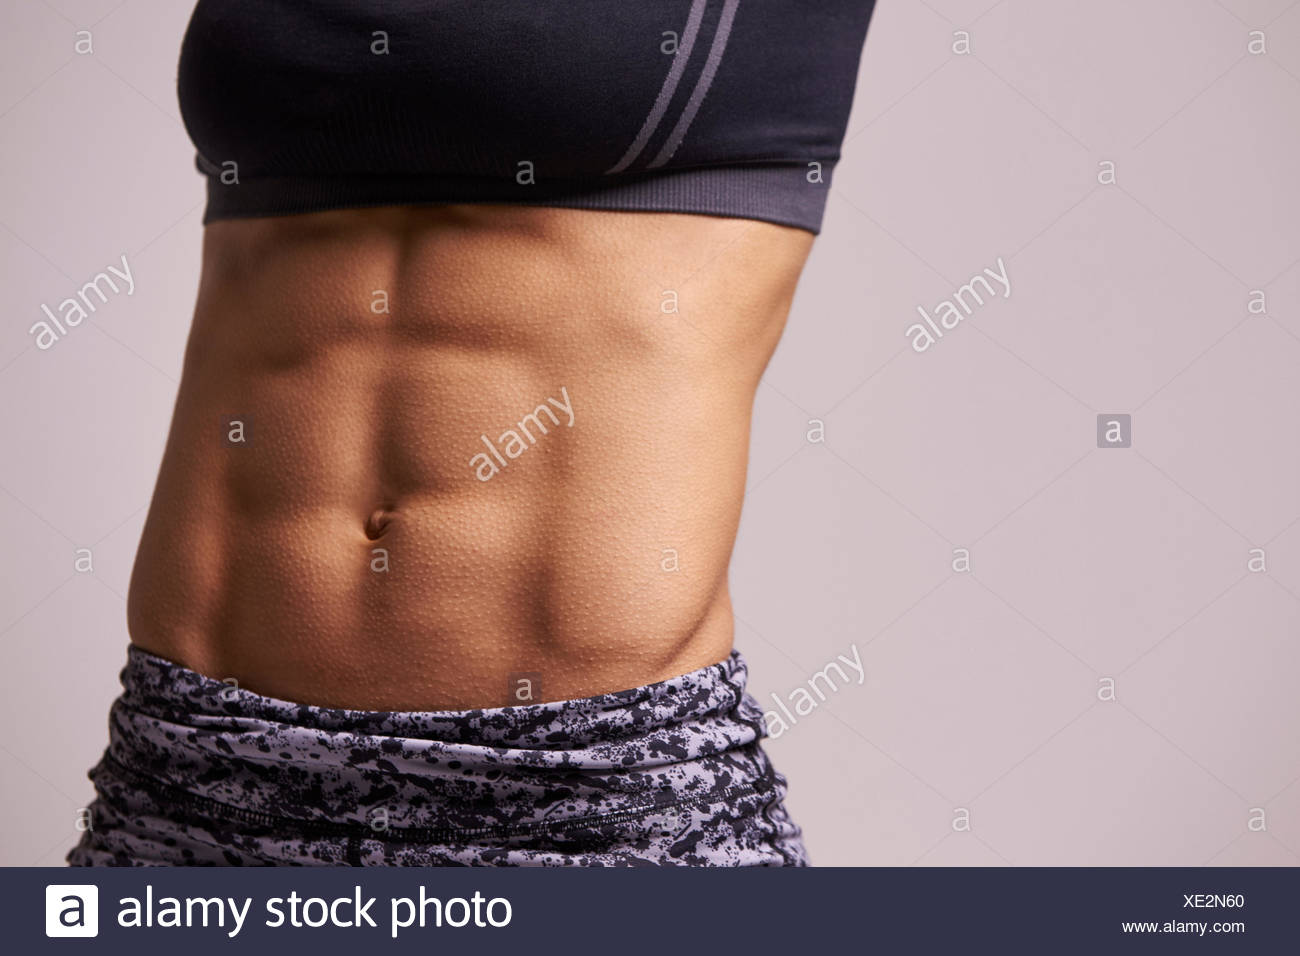 Mid-section crop shot of muscular young woman's abs - Stock Image